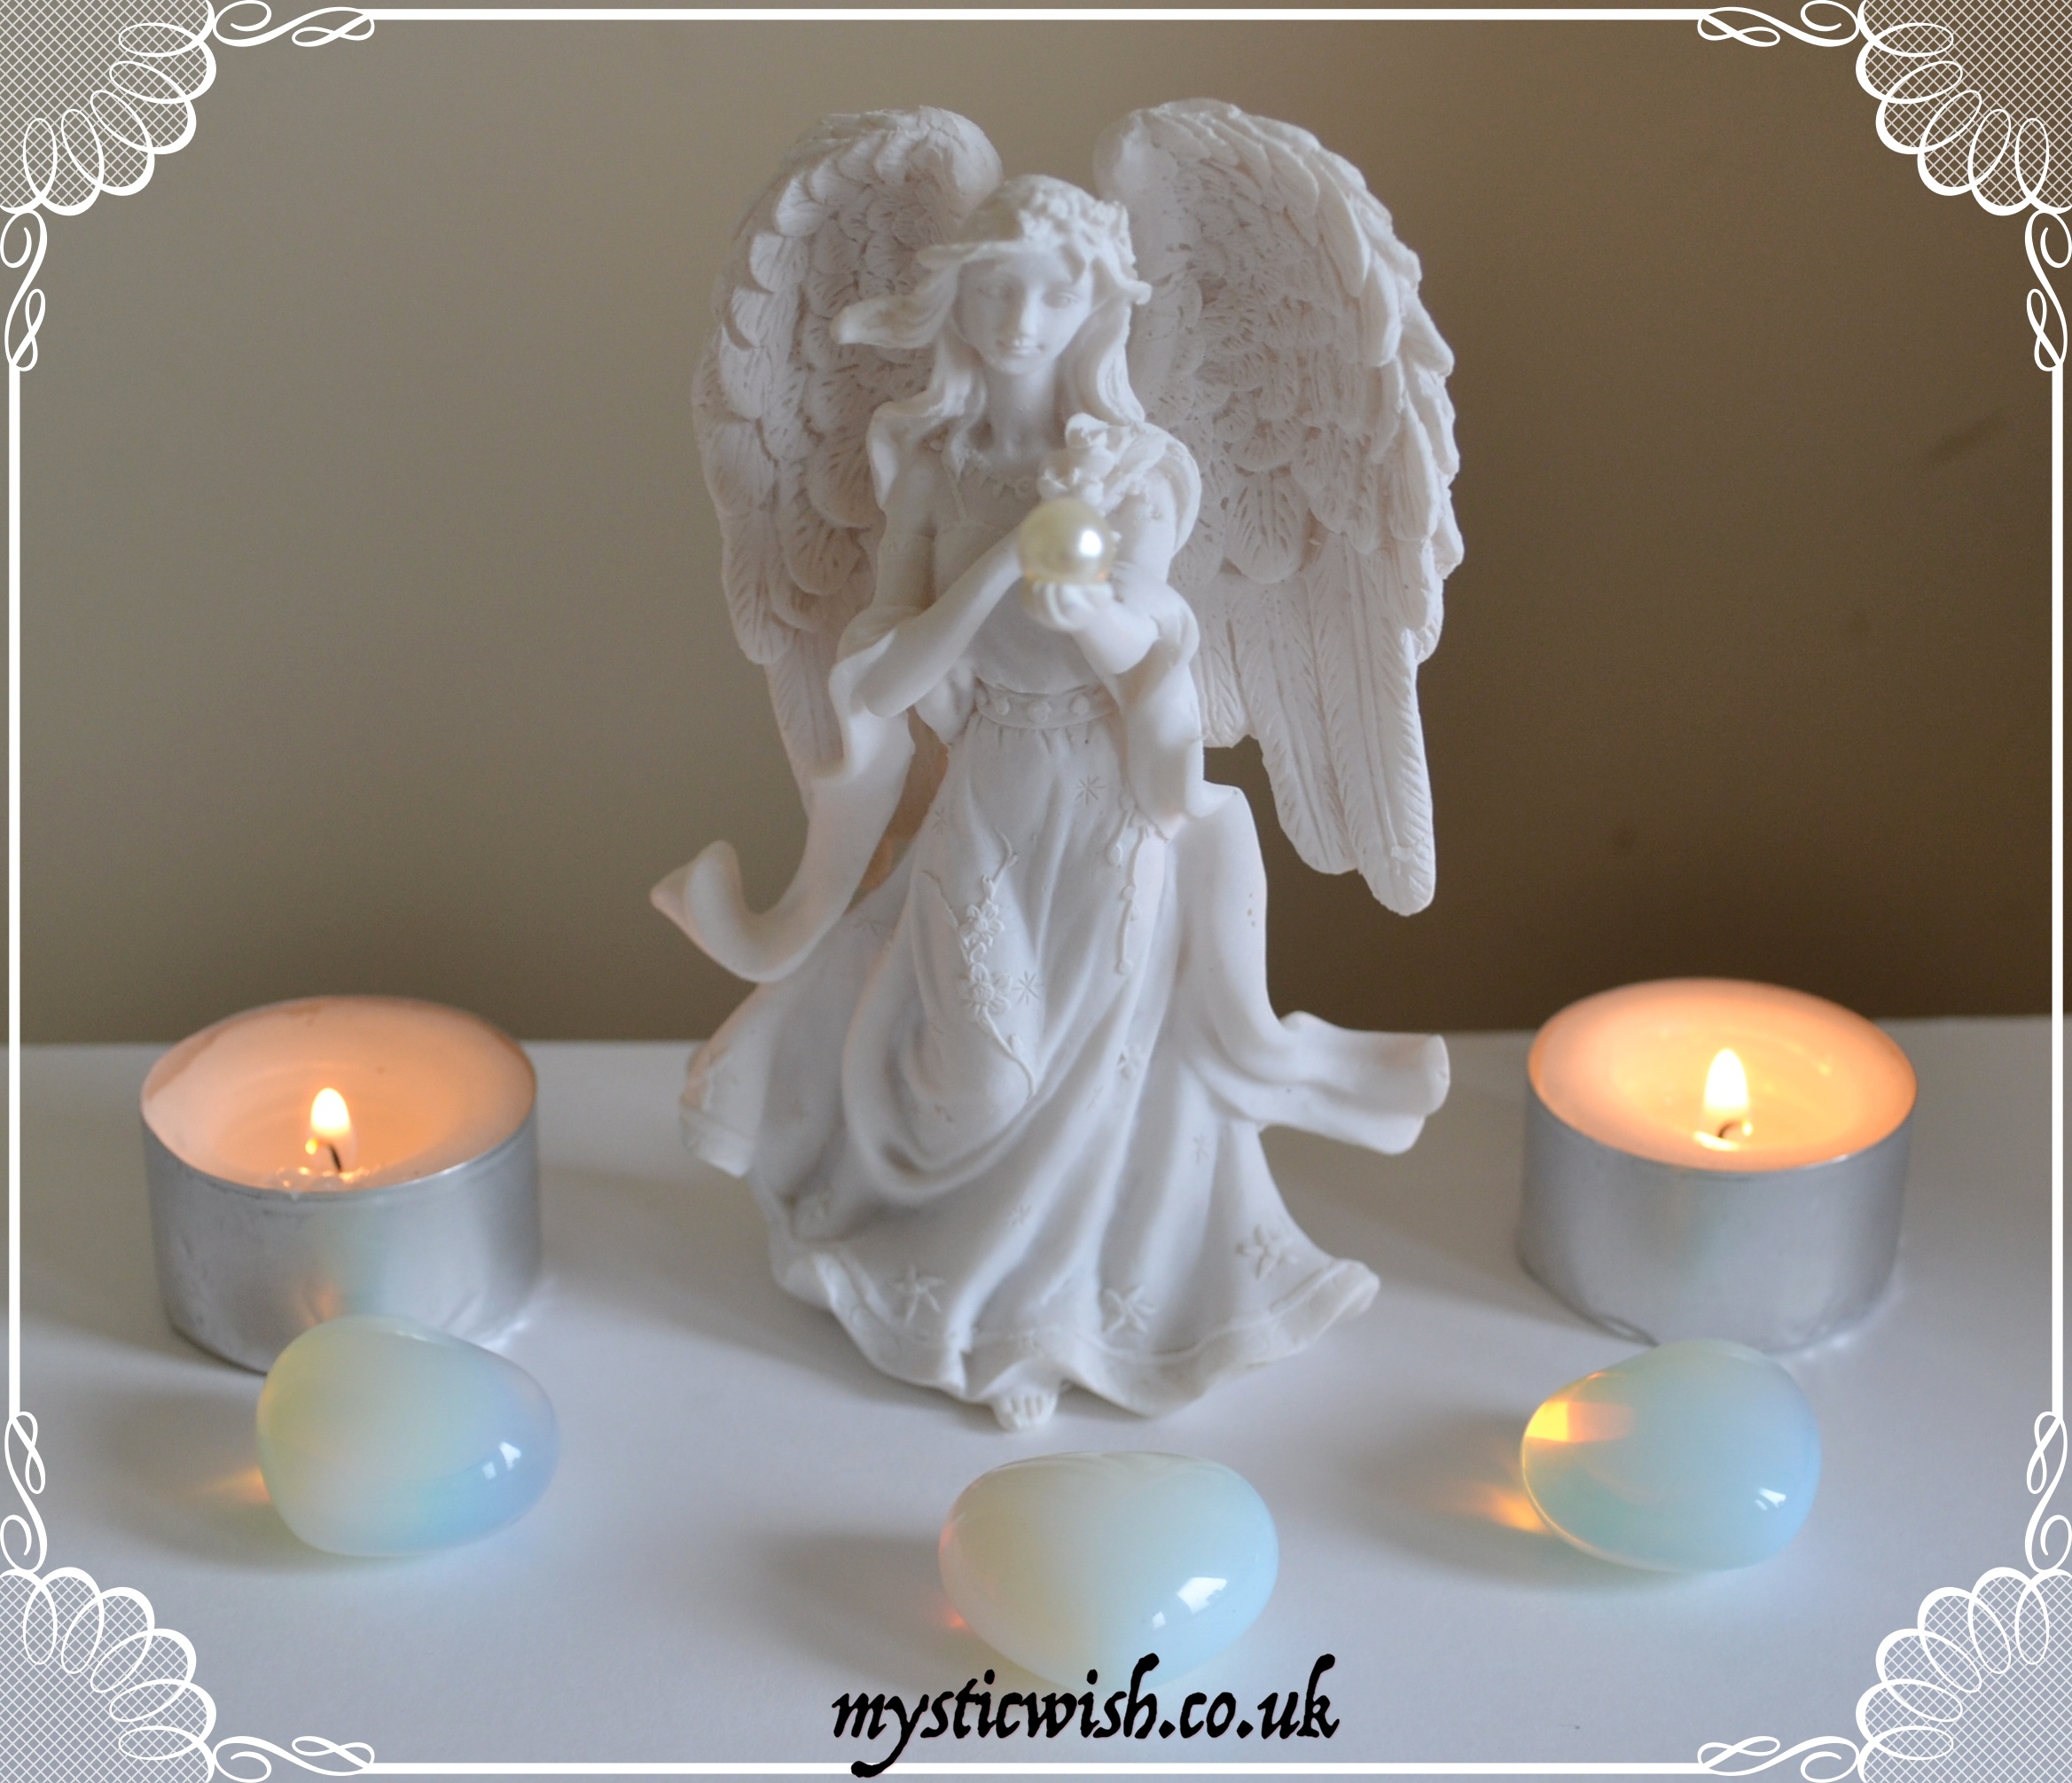 Guardian Angel Pearl Figure Mystic Wish